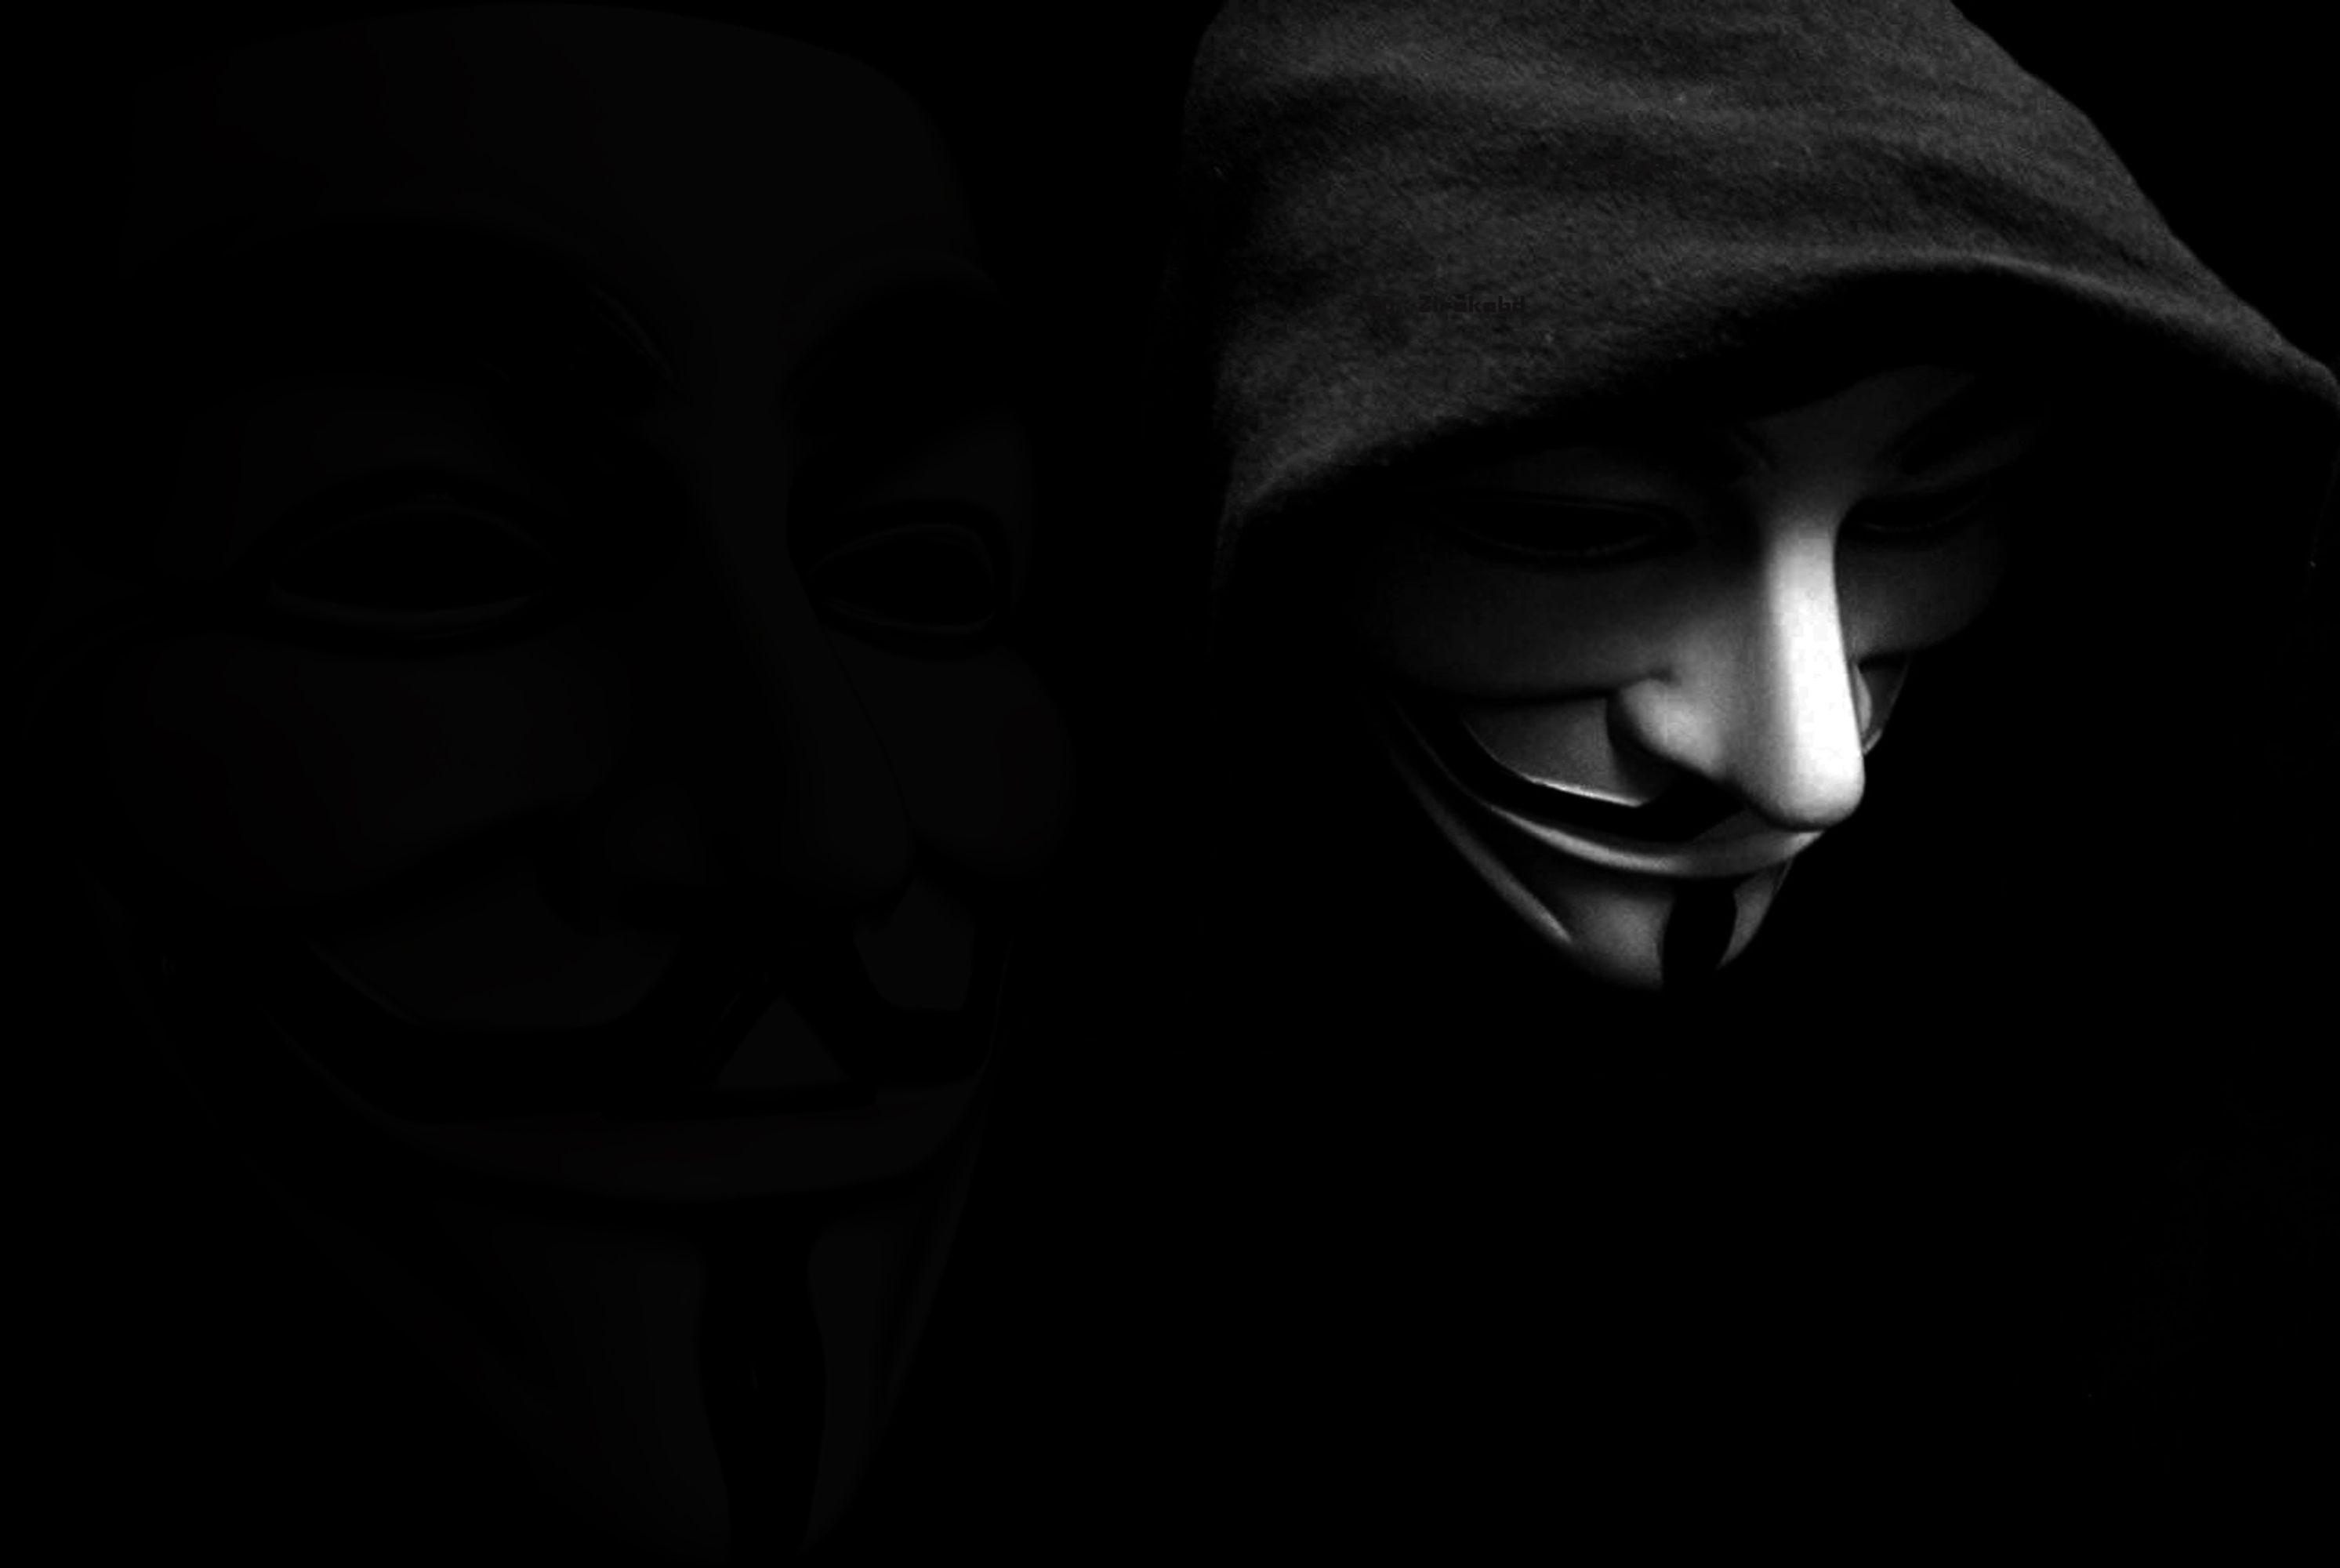 v for vendetta wallpapers hd - wallpaper cave